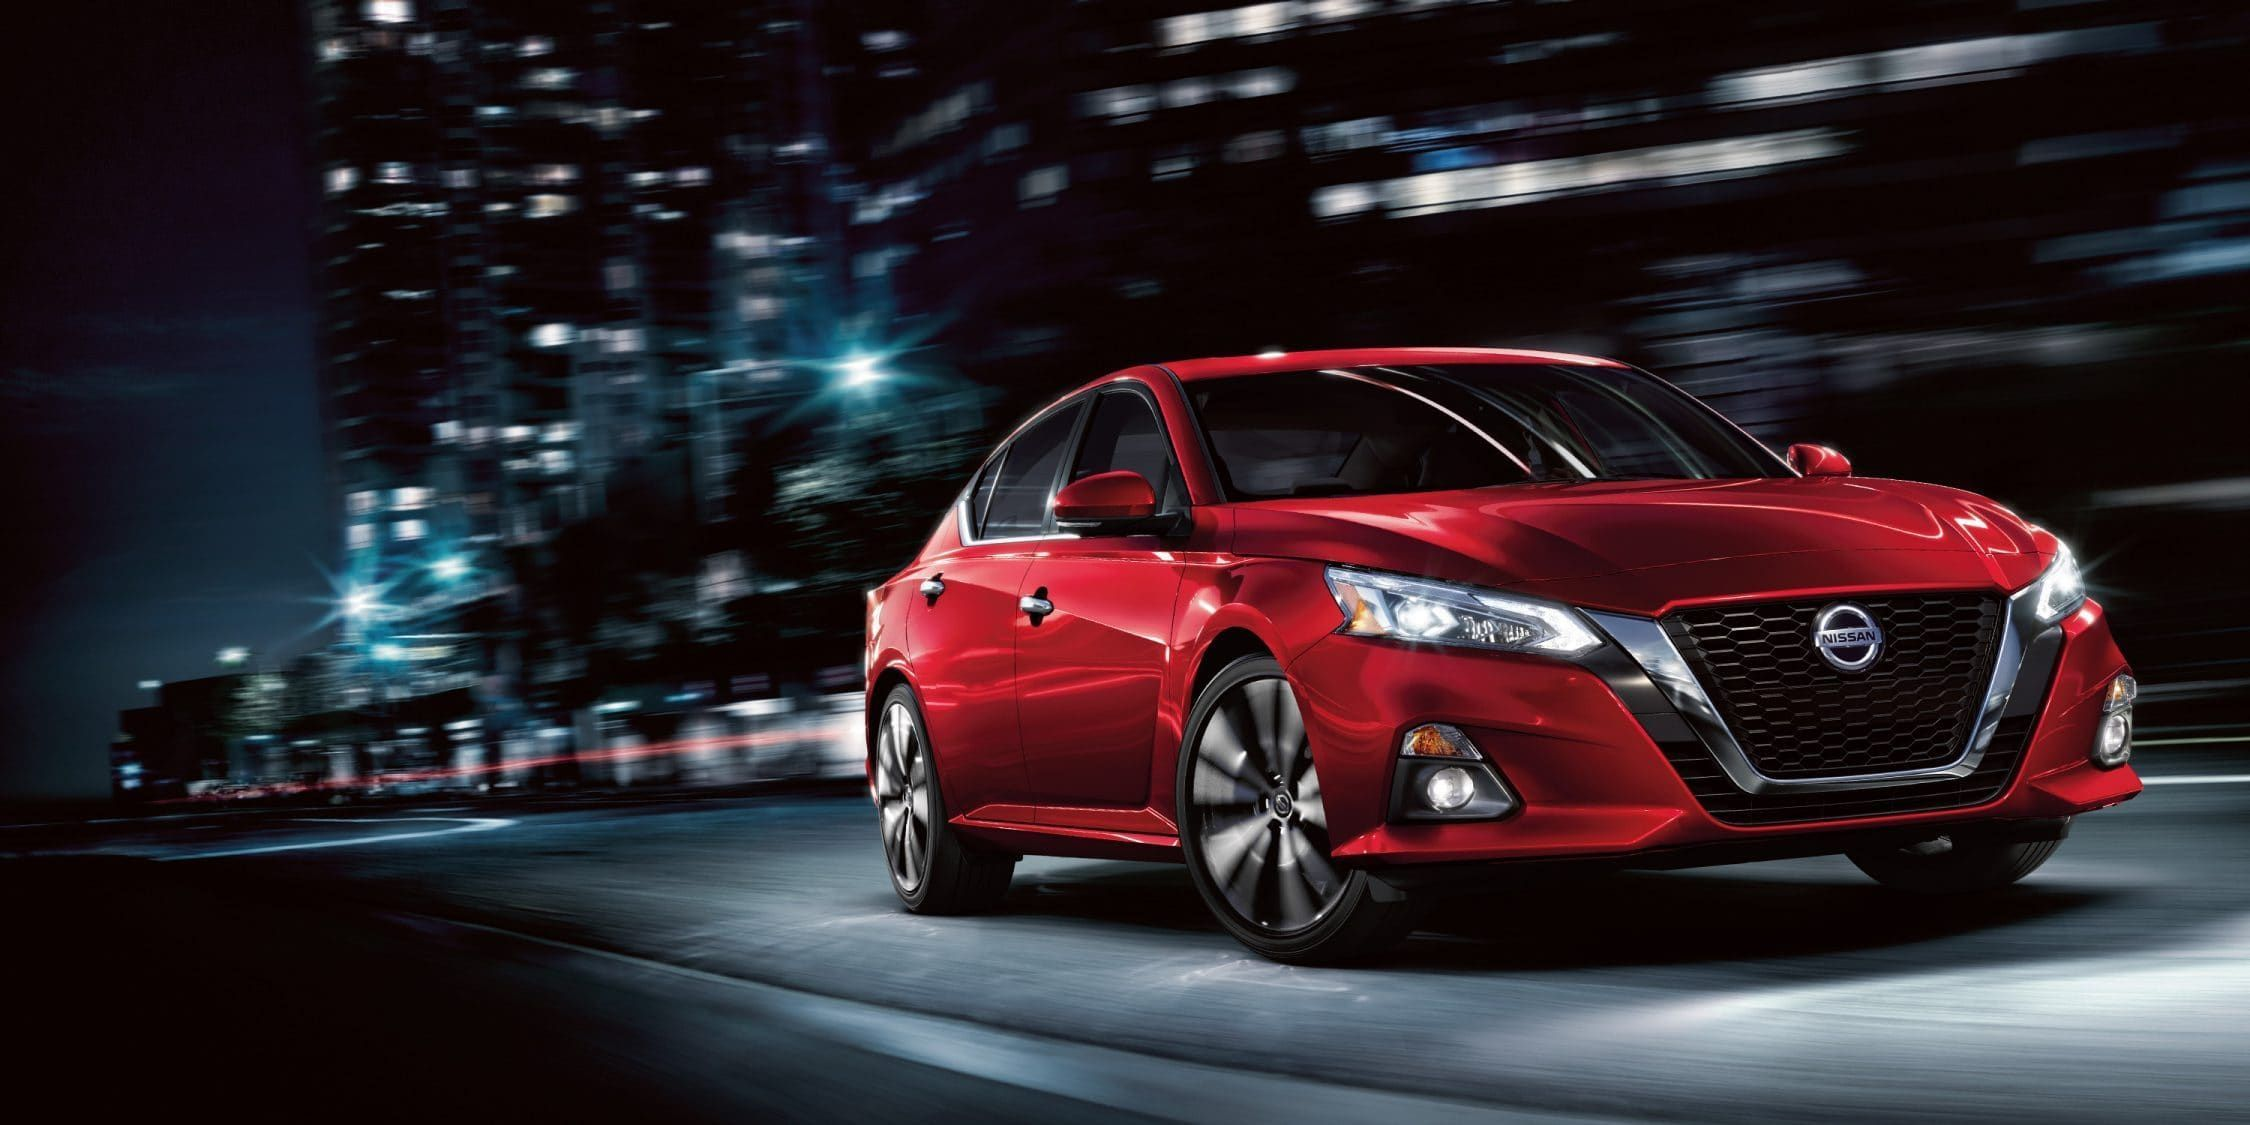 New 2019 Nissan Altima Images Redesign Automotive Pinterest